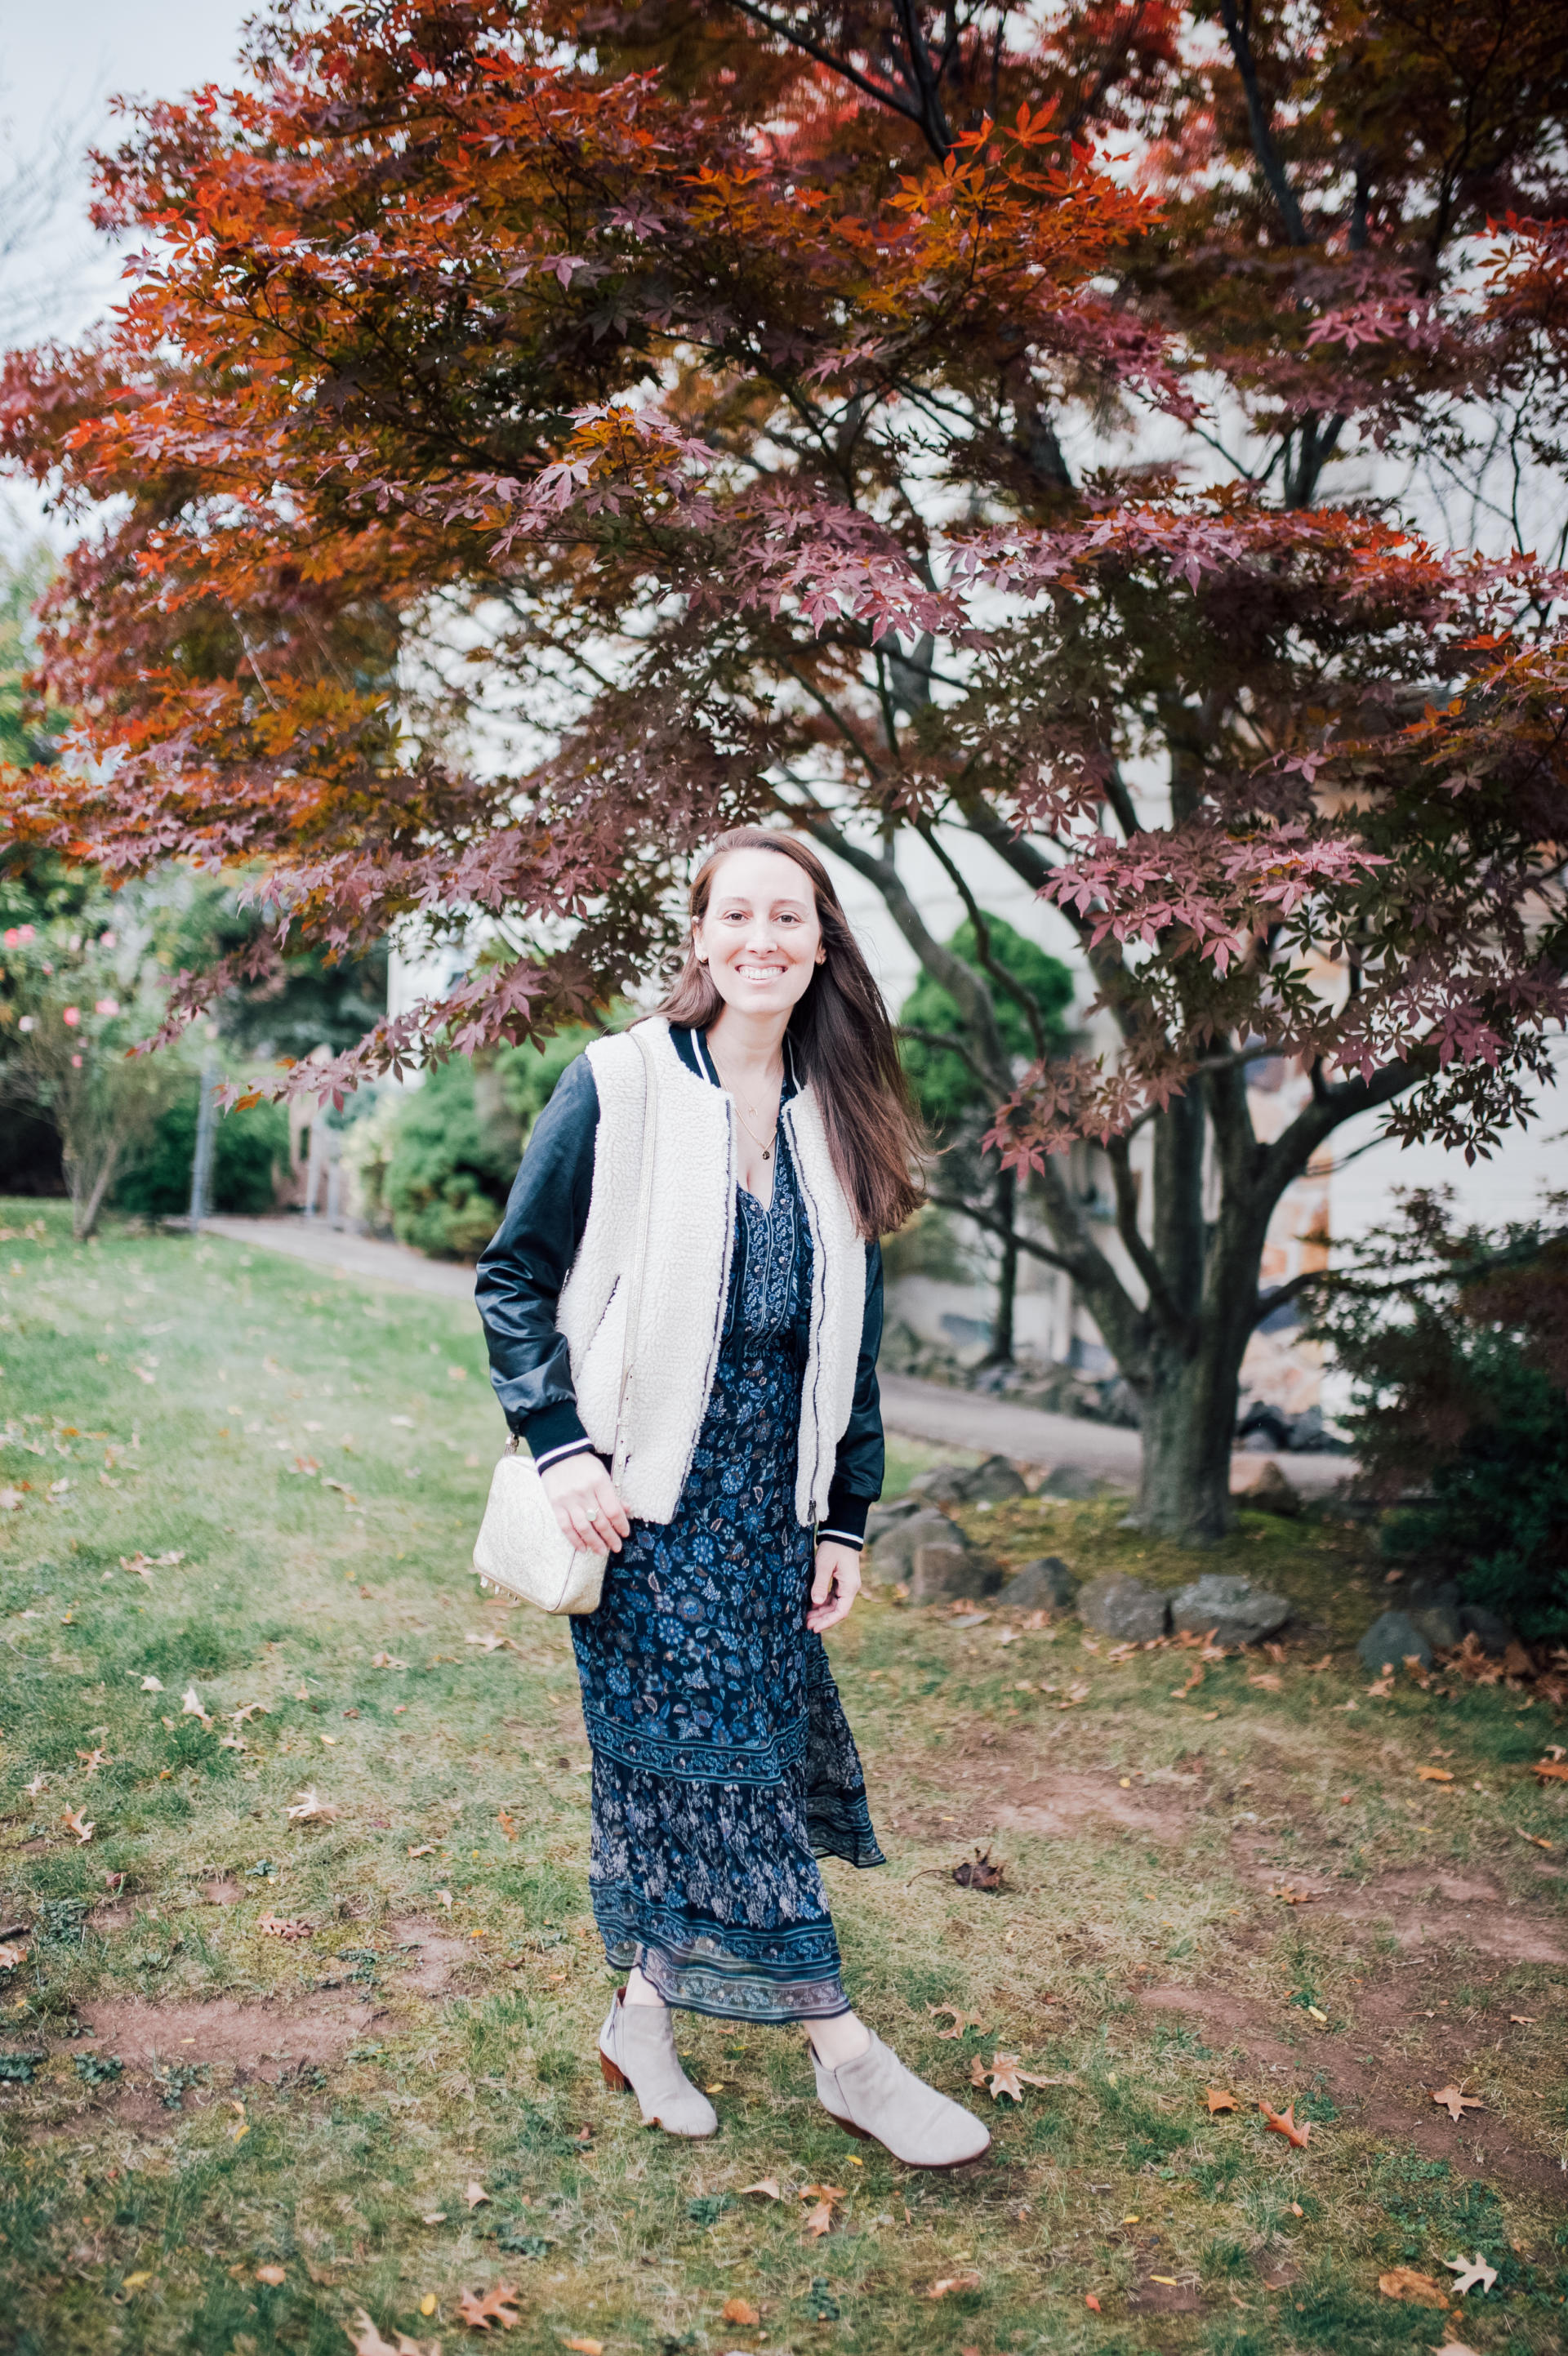 All Smiles: Favorite Fall Fashion Outfit by popular New Jersey fashion blogger What's For Dinner Esq.